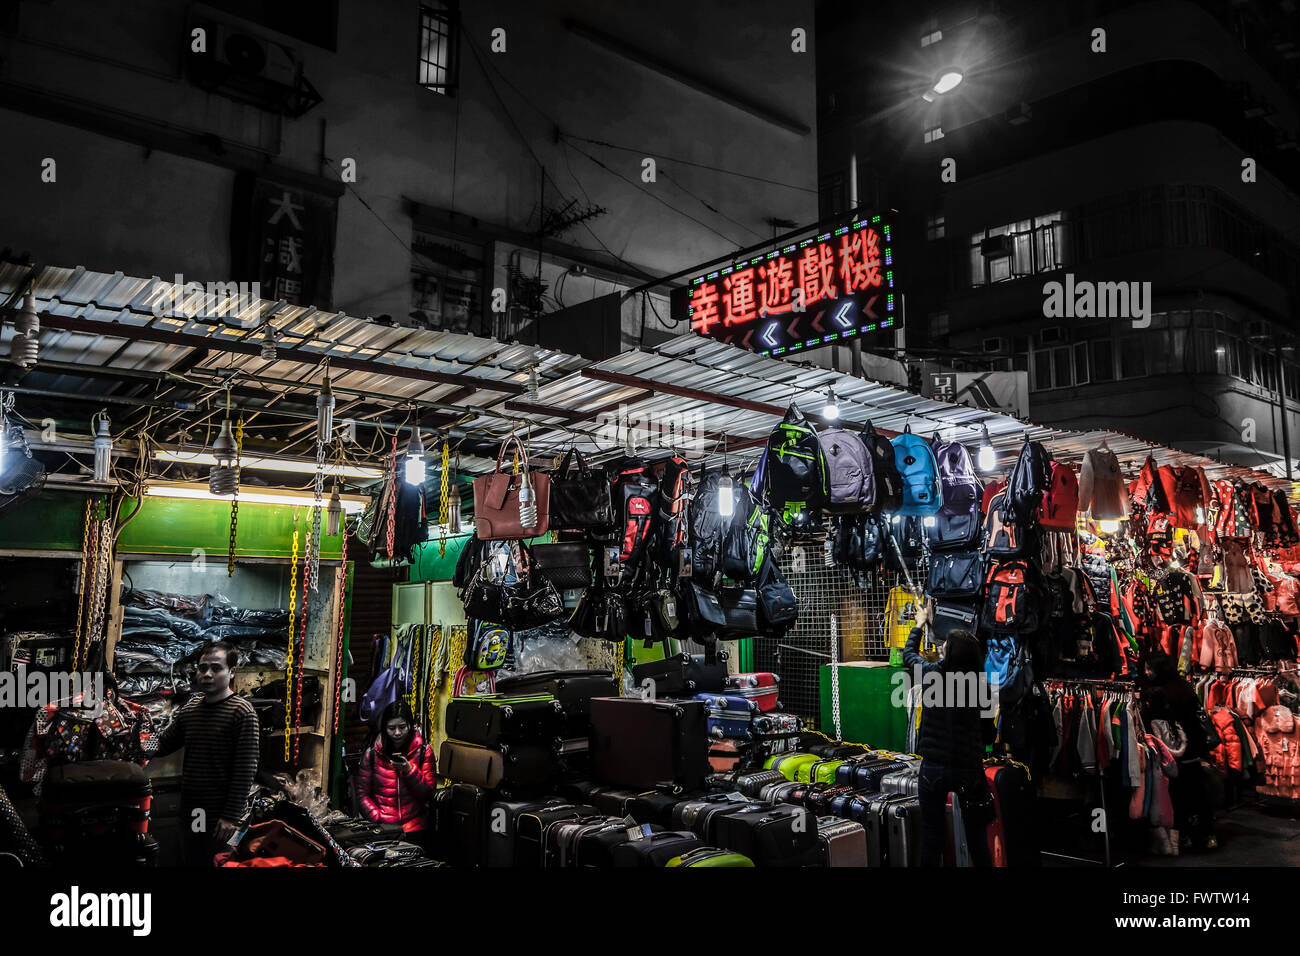 The nightlife on the streets of Hong Kong - Stock Image